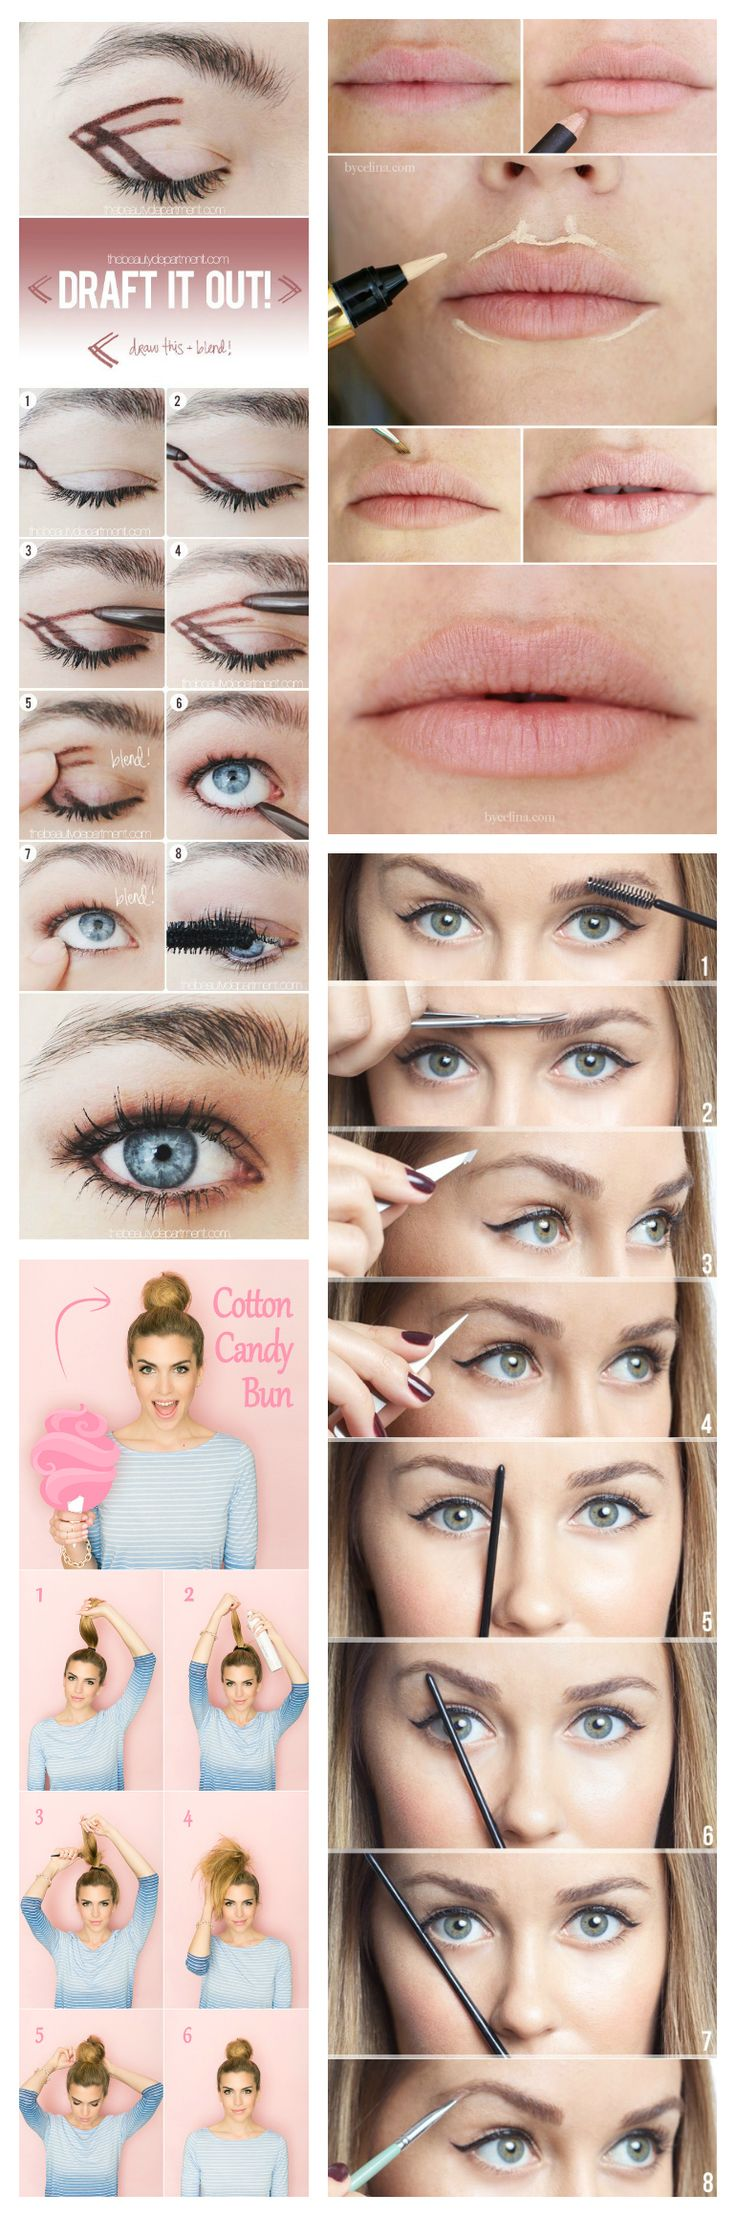 beauty, pictorial, pinterest, the beauty department, make your lipstick last, make lipstick last, eyebrow tutorial, eyebrow routine, cotton candy bun, smokey eye tutorial, easy eyeshadow tutorial, perfect ponytail, ponytail tutorial, hair tutorial, beauty tutorial, make-up tutorial, braid tutorial<br />